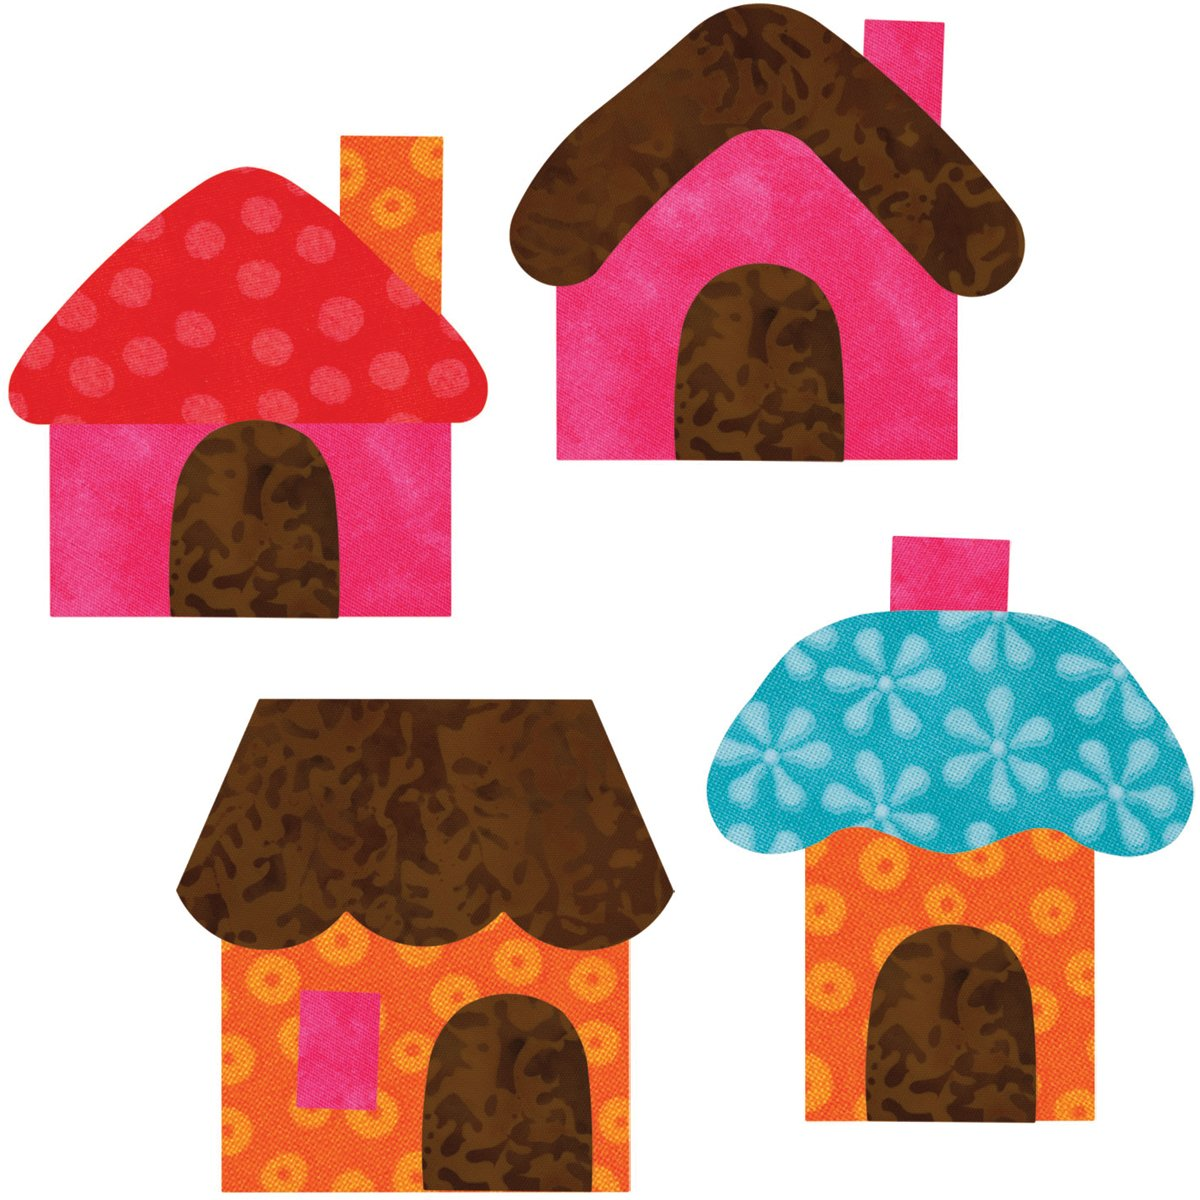 Go! This & That Fabric Cutting Dies-Small Houses 2-1/2x3by Reiko Kato